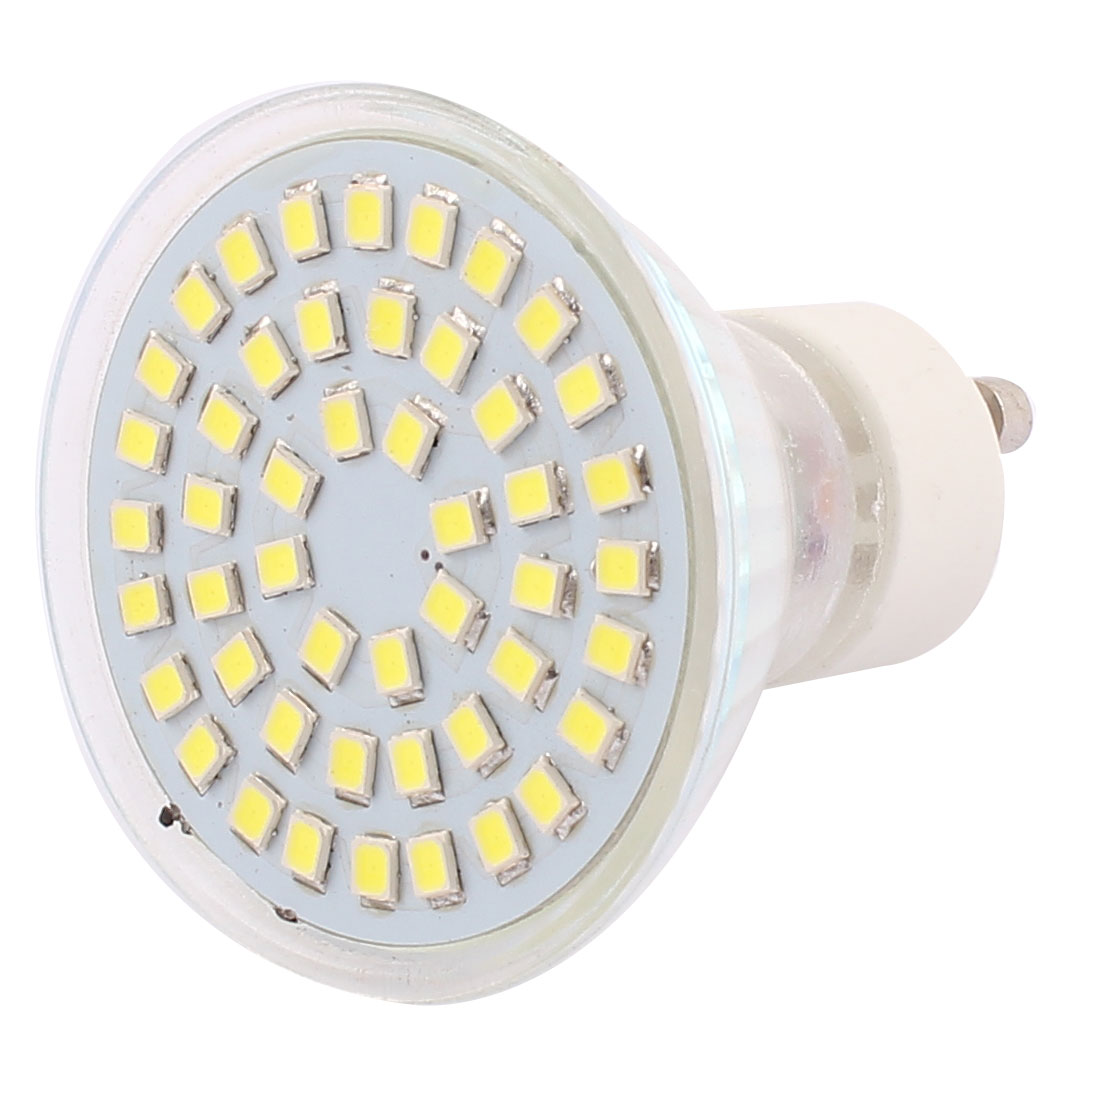 GU10 SMD 2835 48 LEDs 4W Glass Energy-Saving LED Lamp Bulb White AC 110V